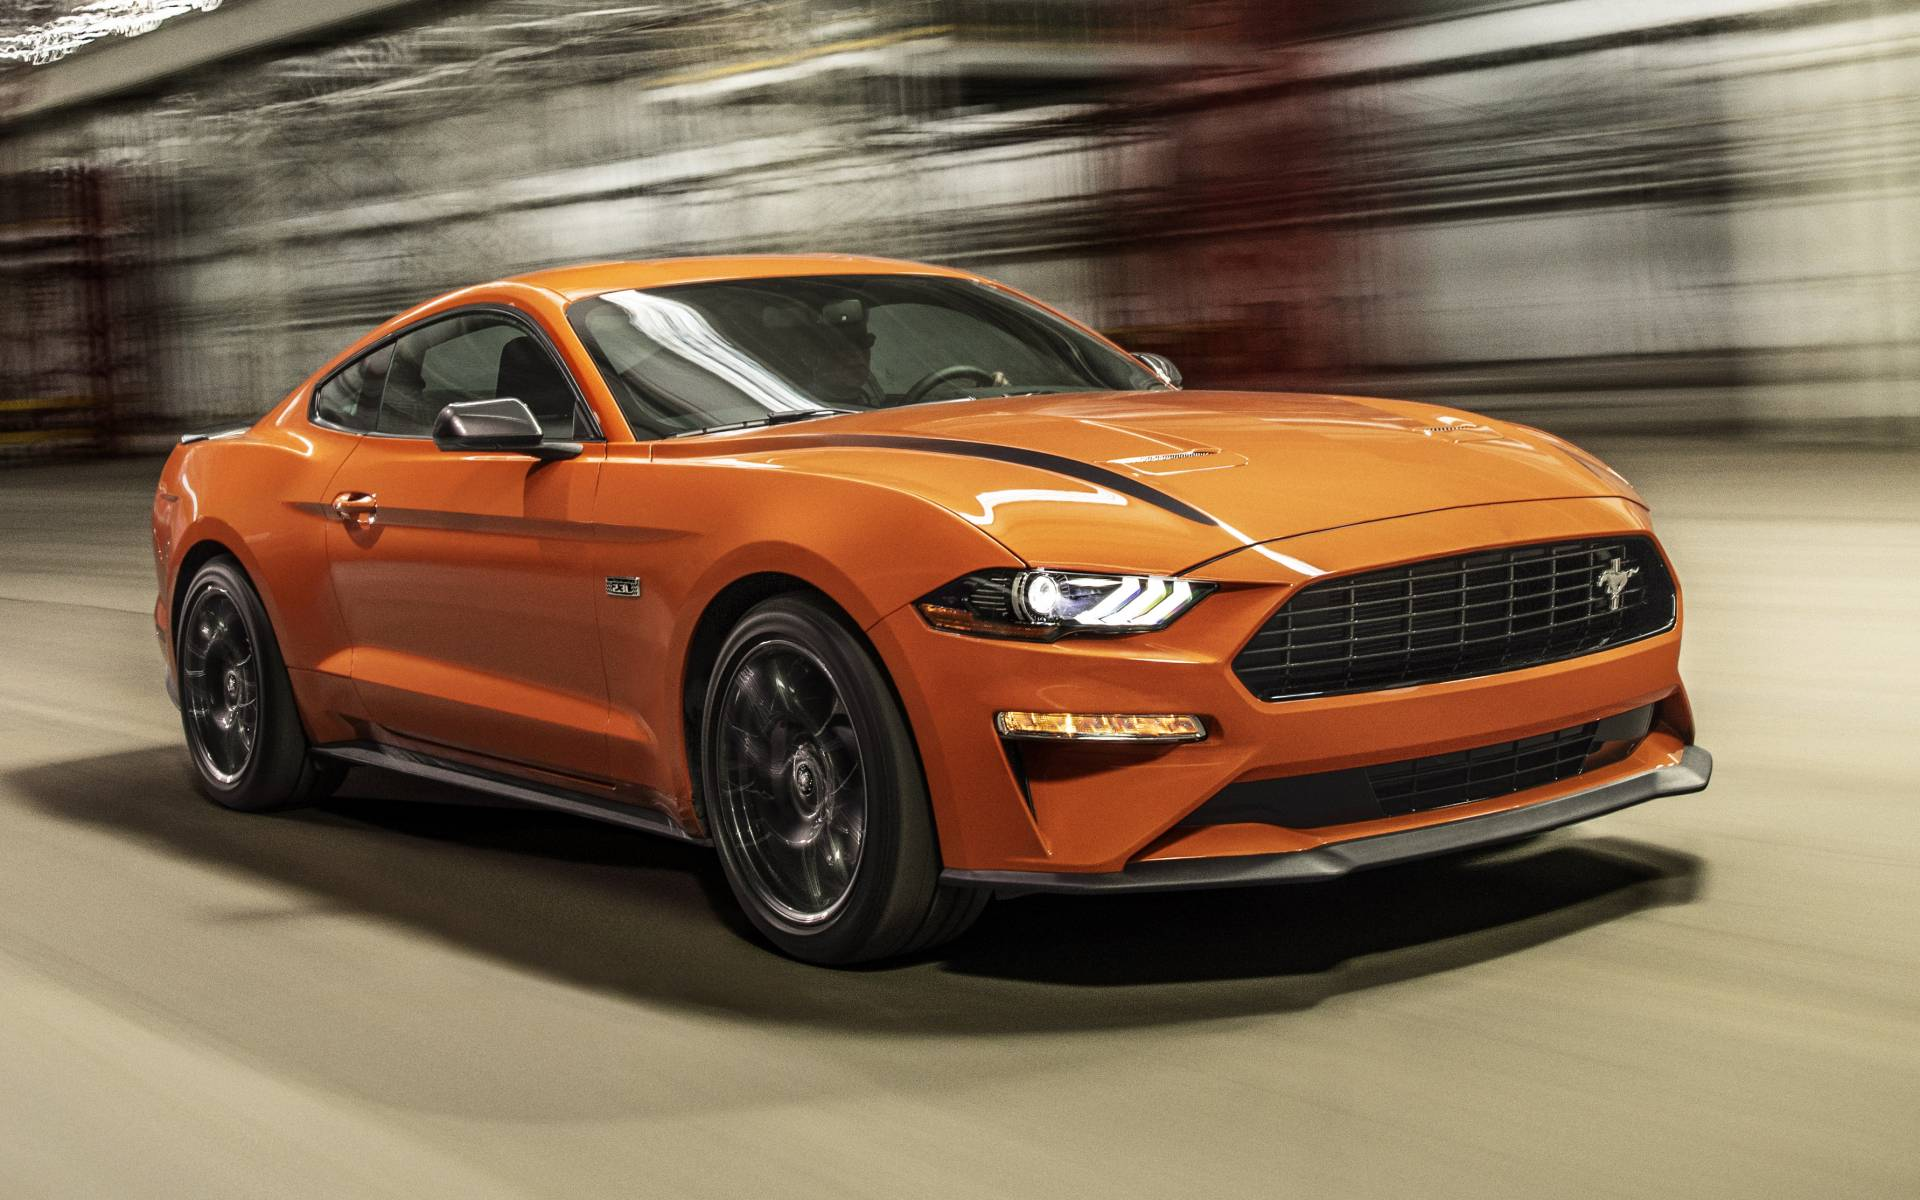 2020 Ford Mustang News Reviews Picture Galleries And Videos The Car Guide